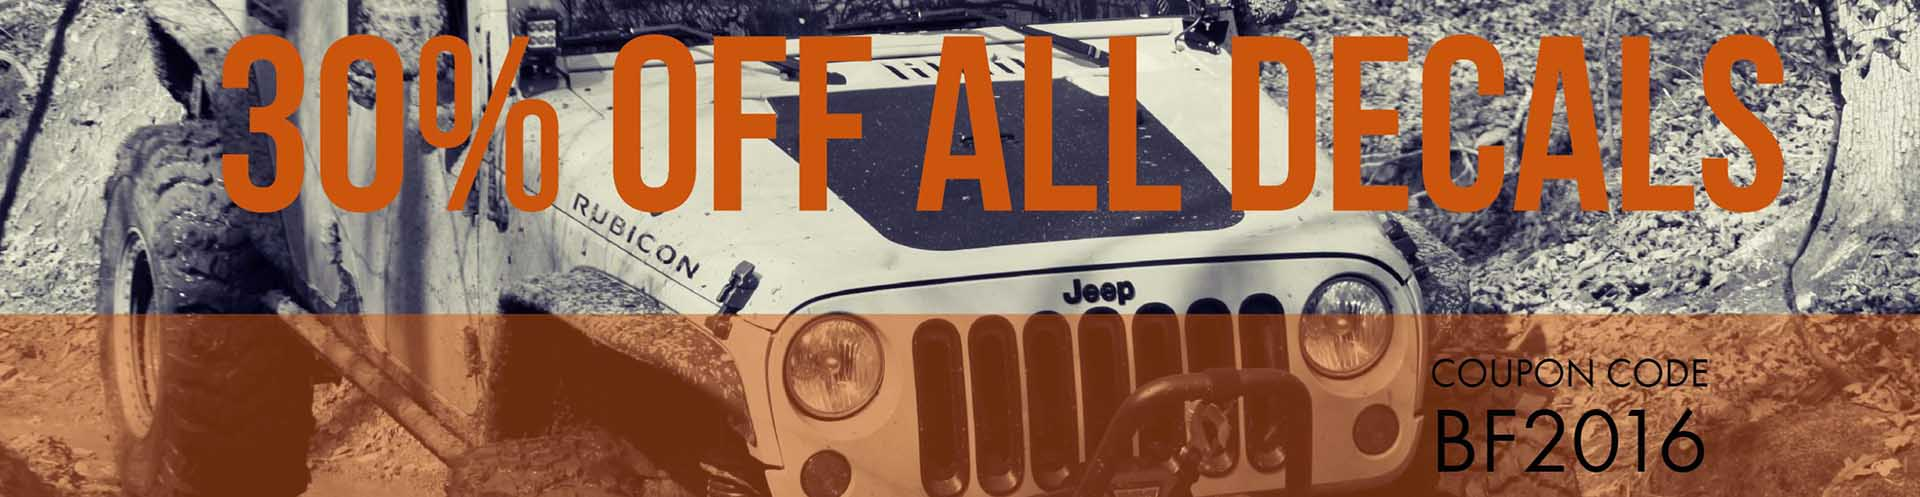 black-friday-jeep-decals-30-sale-1